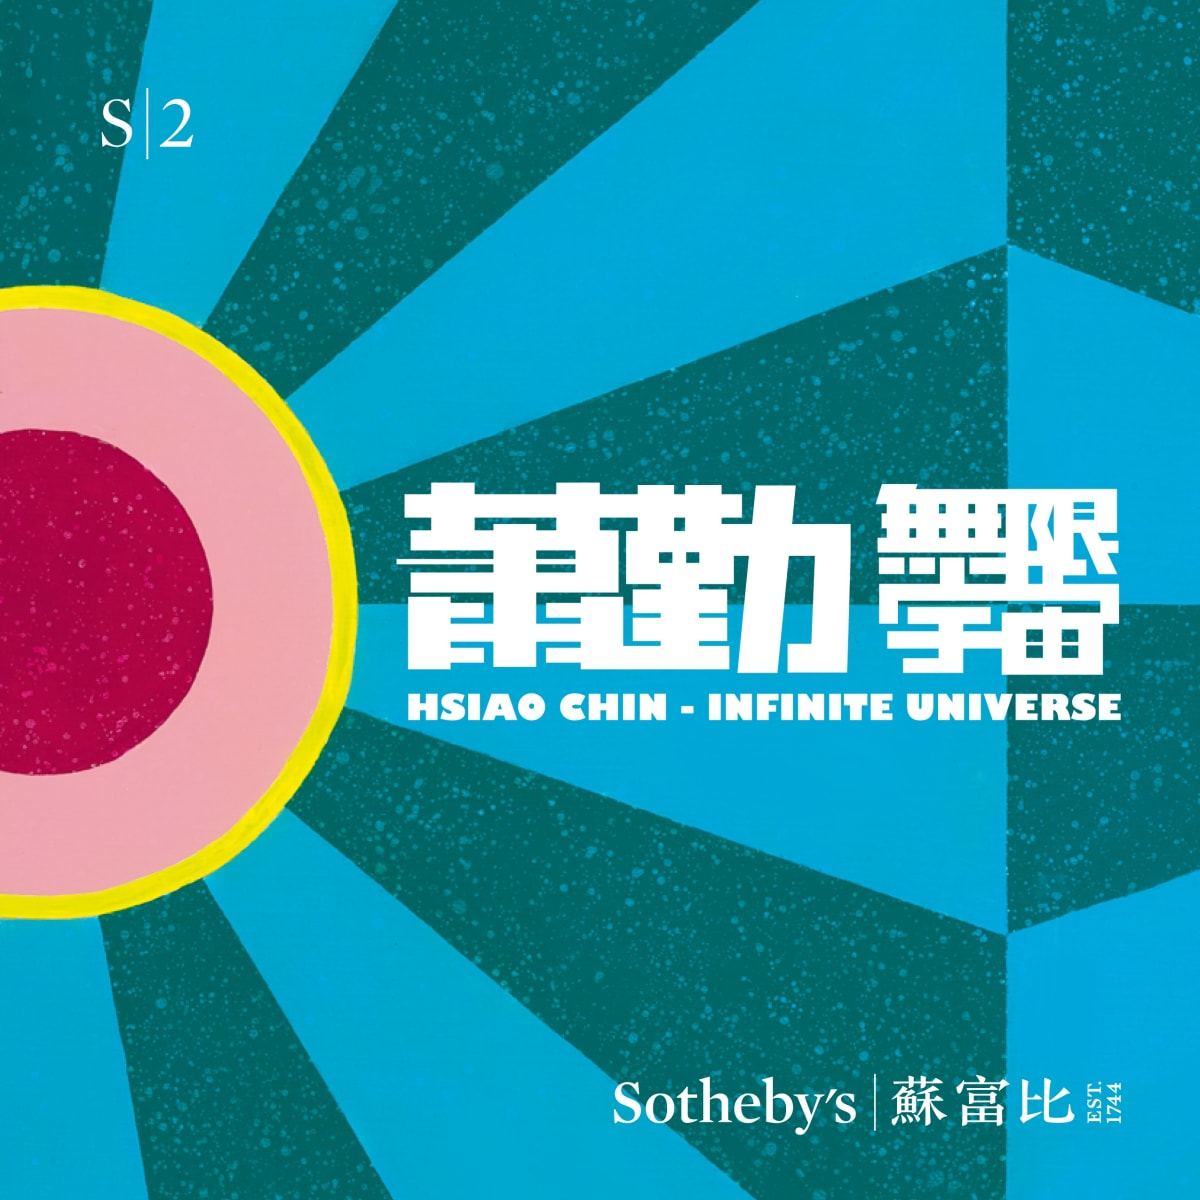 Sotheby's Presents Hsiao Chin's Largest Solo Exhibition in Hong Kong